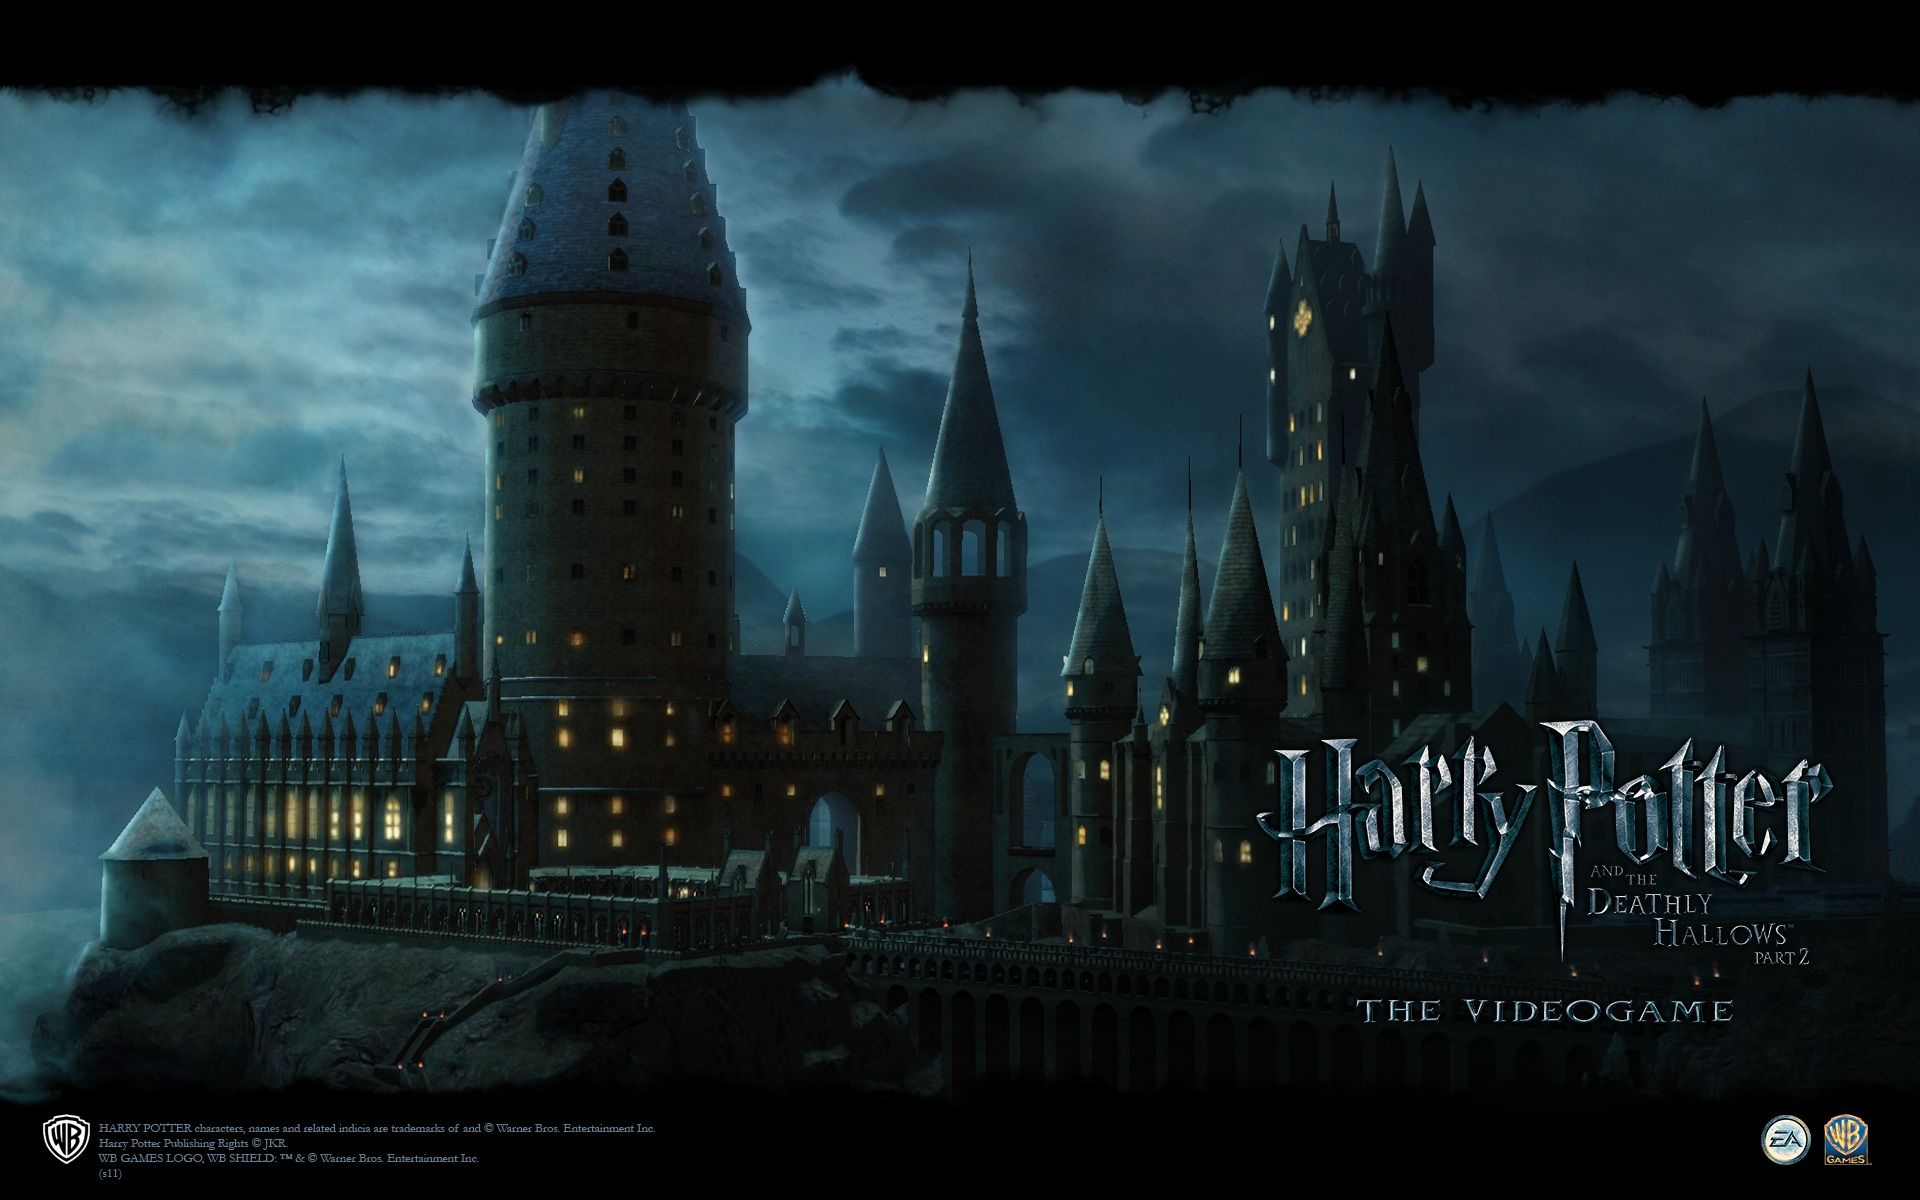 Harry Potter Wallpapers Harry potter wallpaper Slytherin 1920x1200